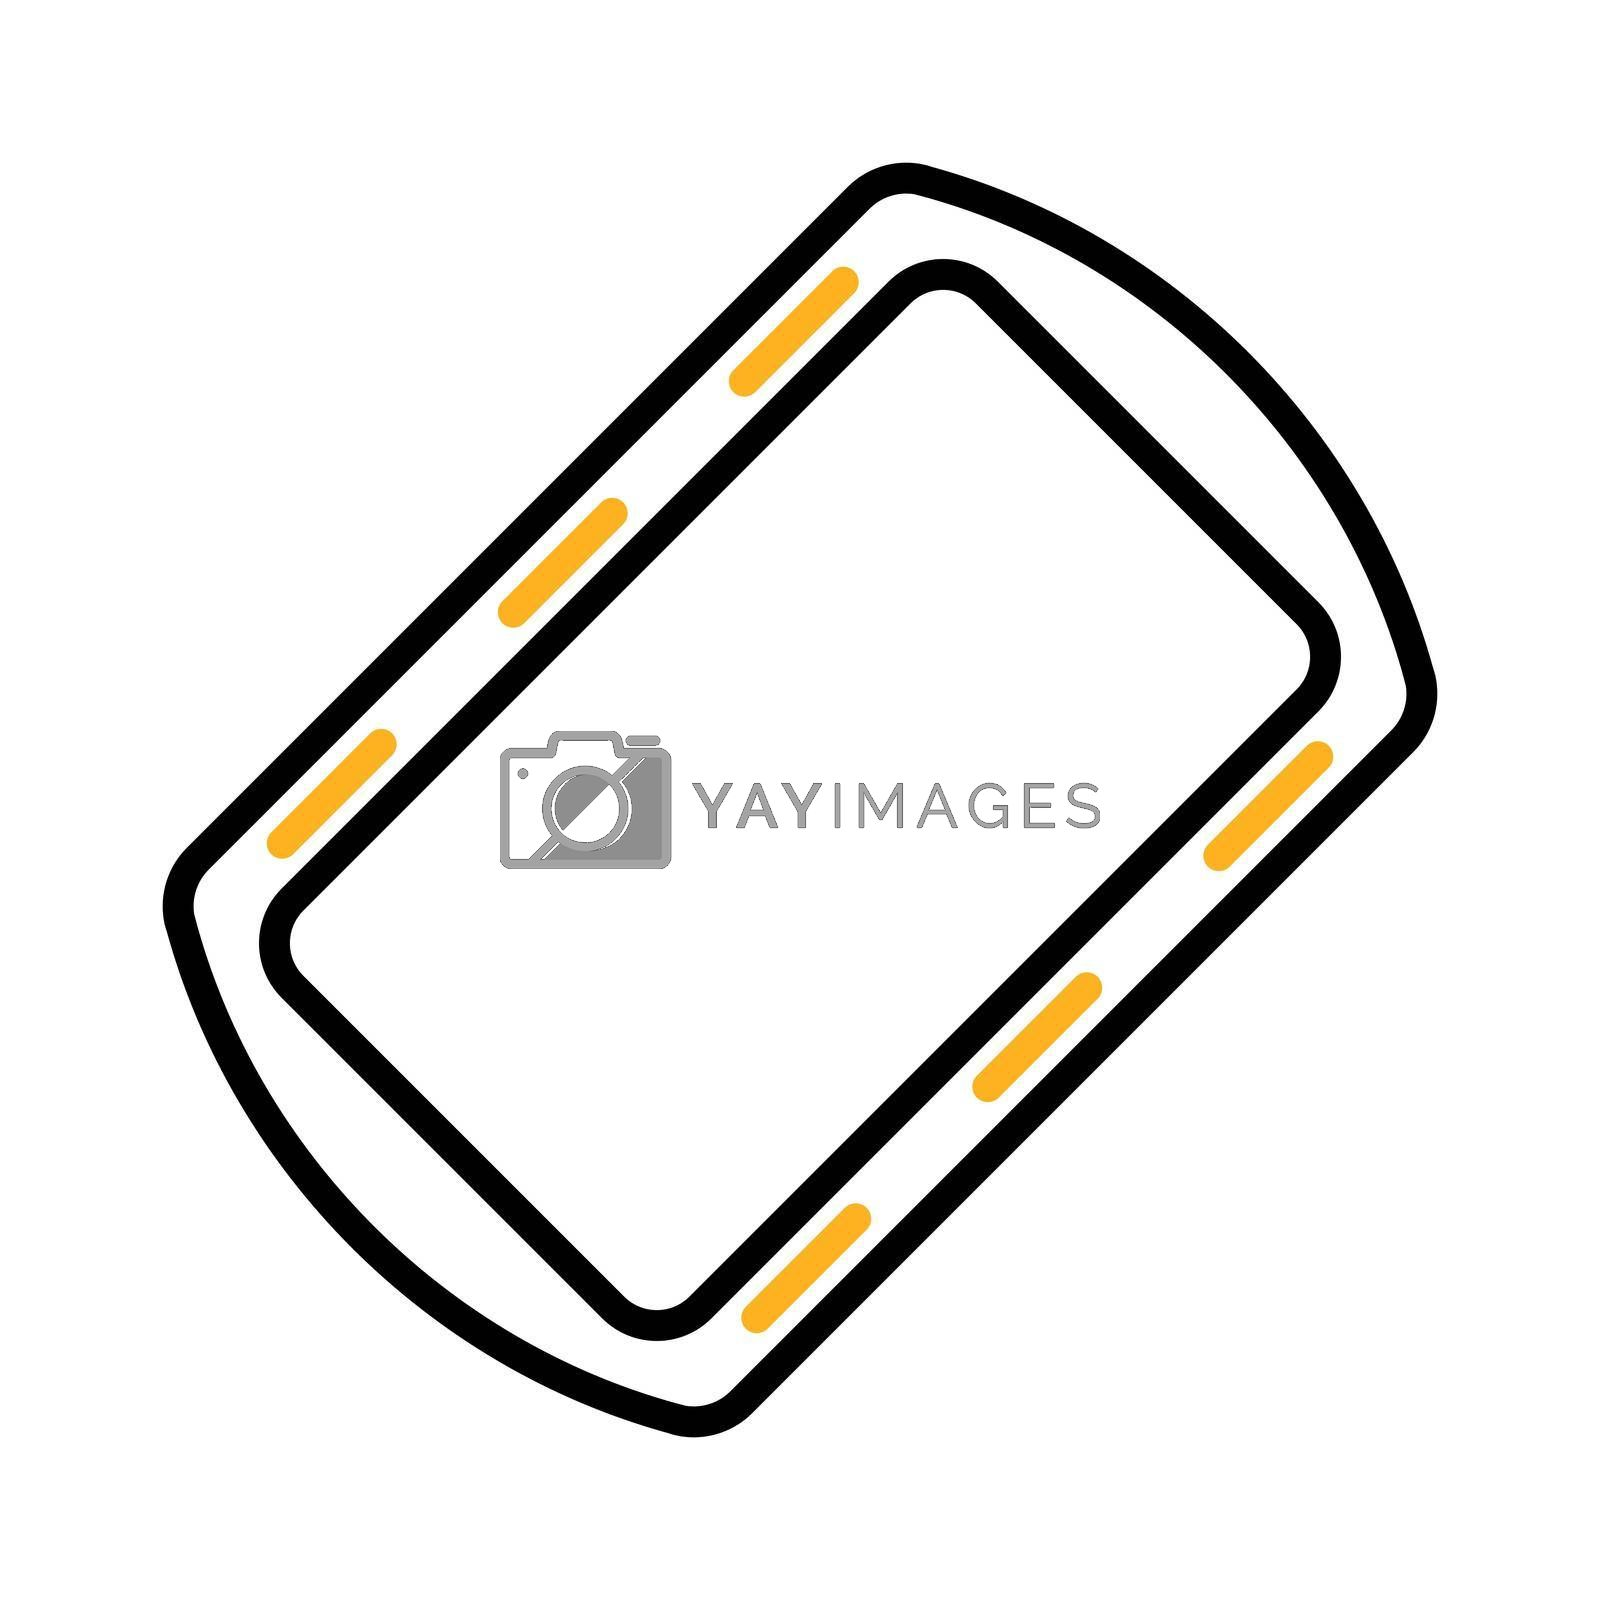 Royalty free image of Pan tray for cooking and baking in oven icon by nosik